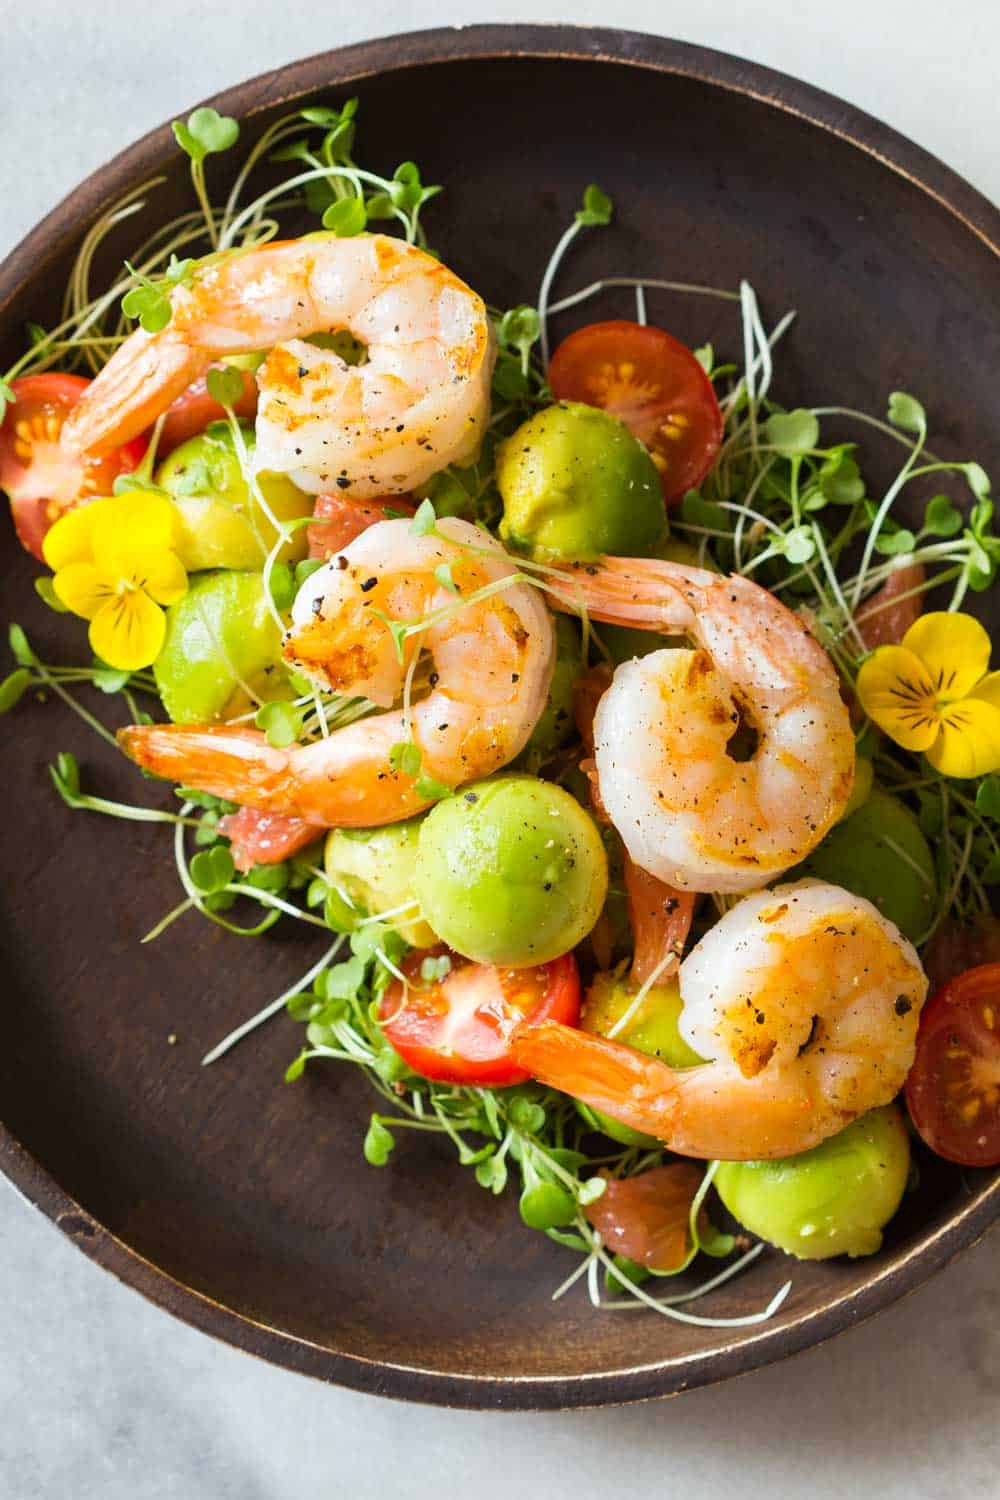 Shrimp, avocado, tomato, arugula and grapefruit with cilantro dressing served on a brown bowl.